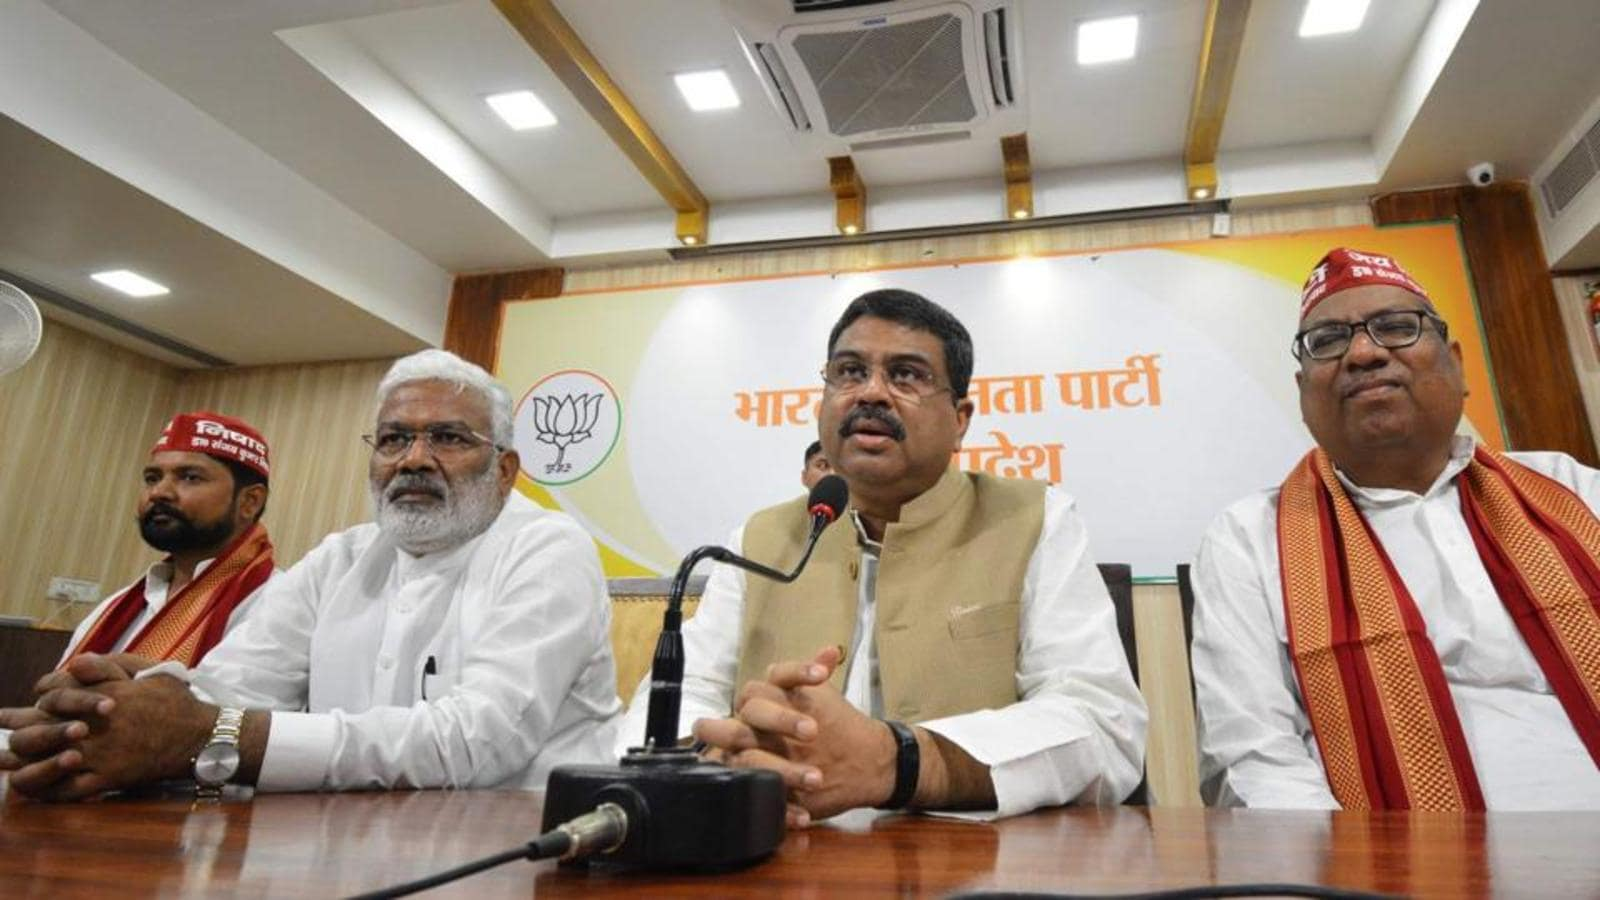 BJP open to alliances with other smaller parties in Uttar Pradesh, says Dharmendra Pradhan